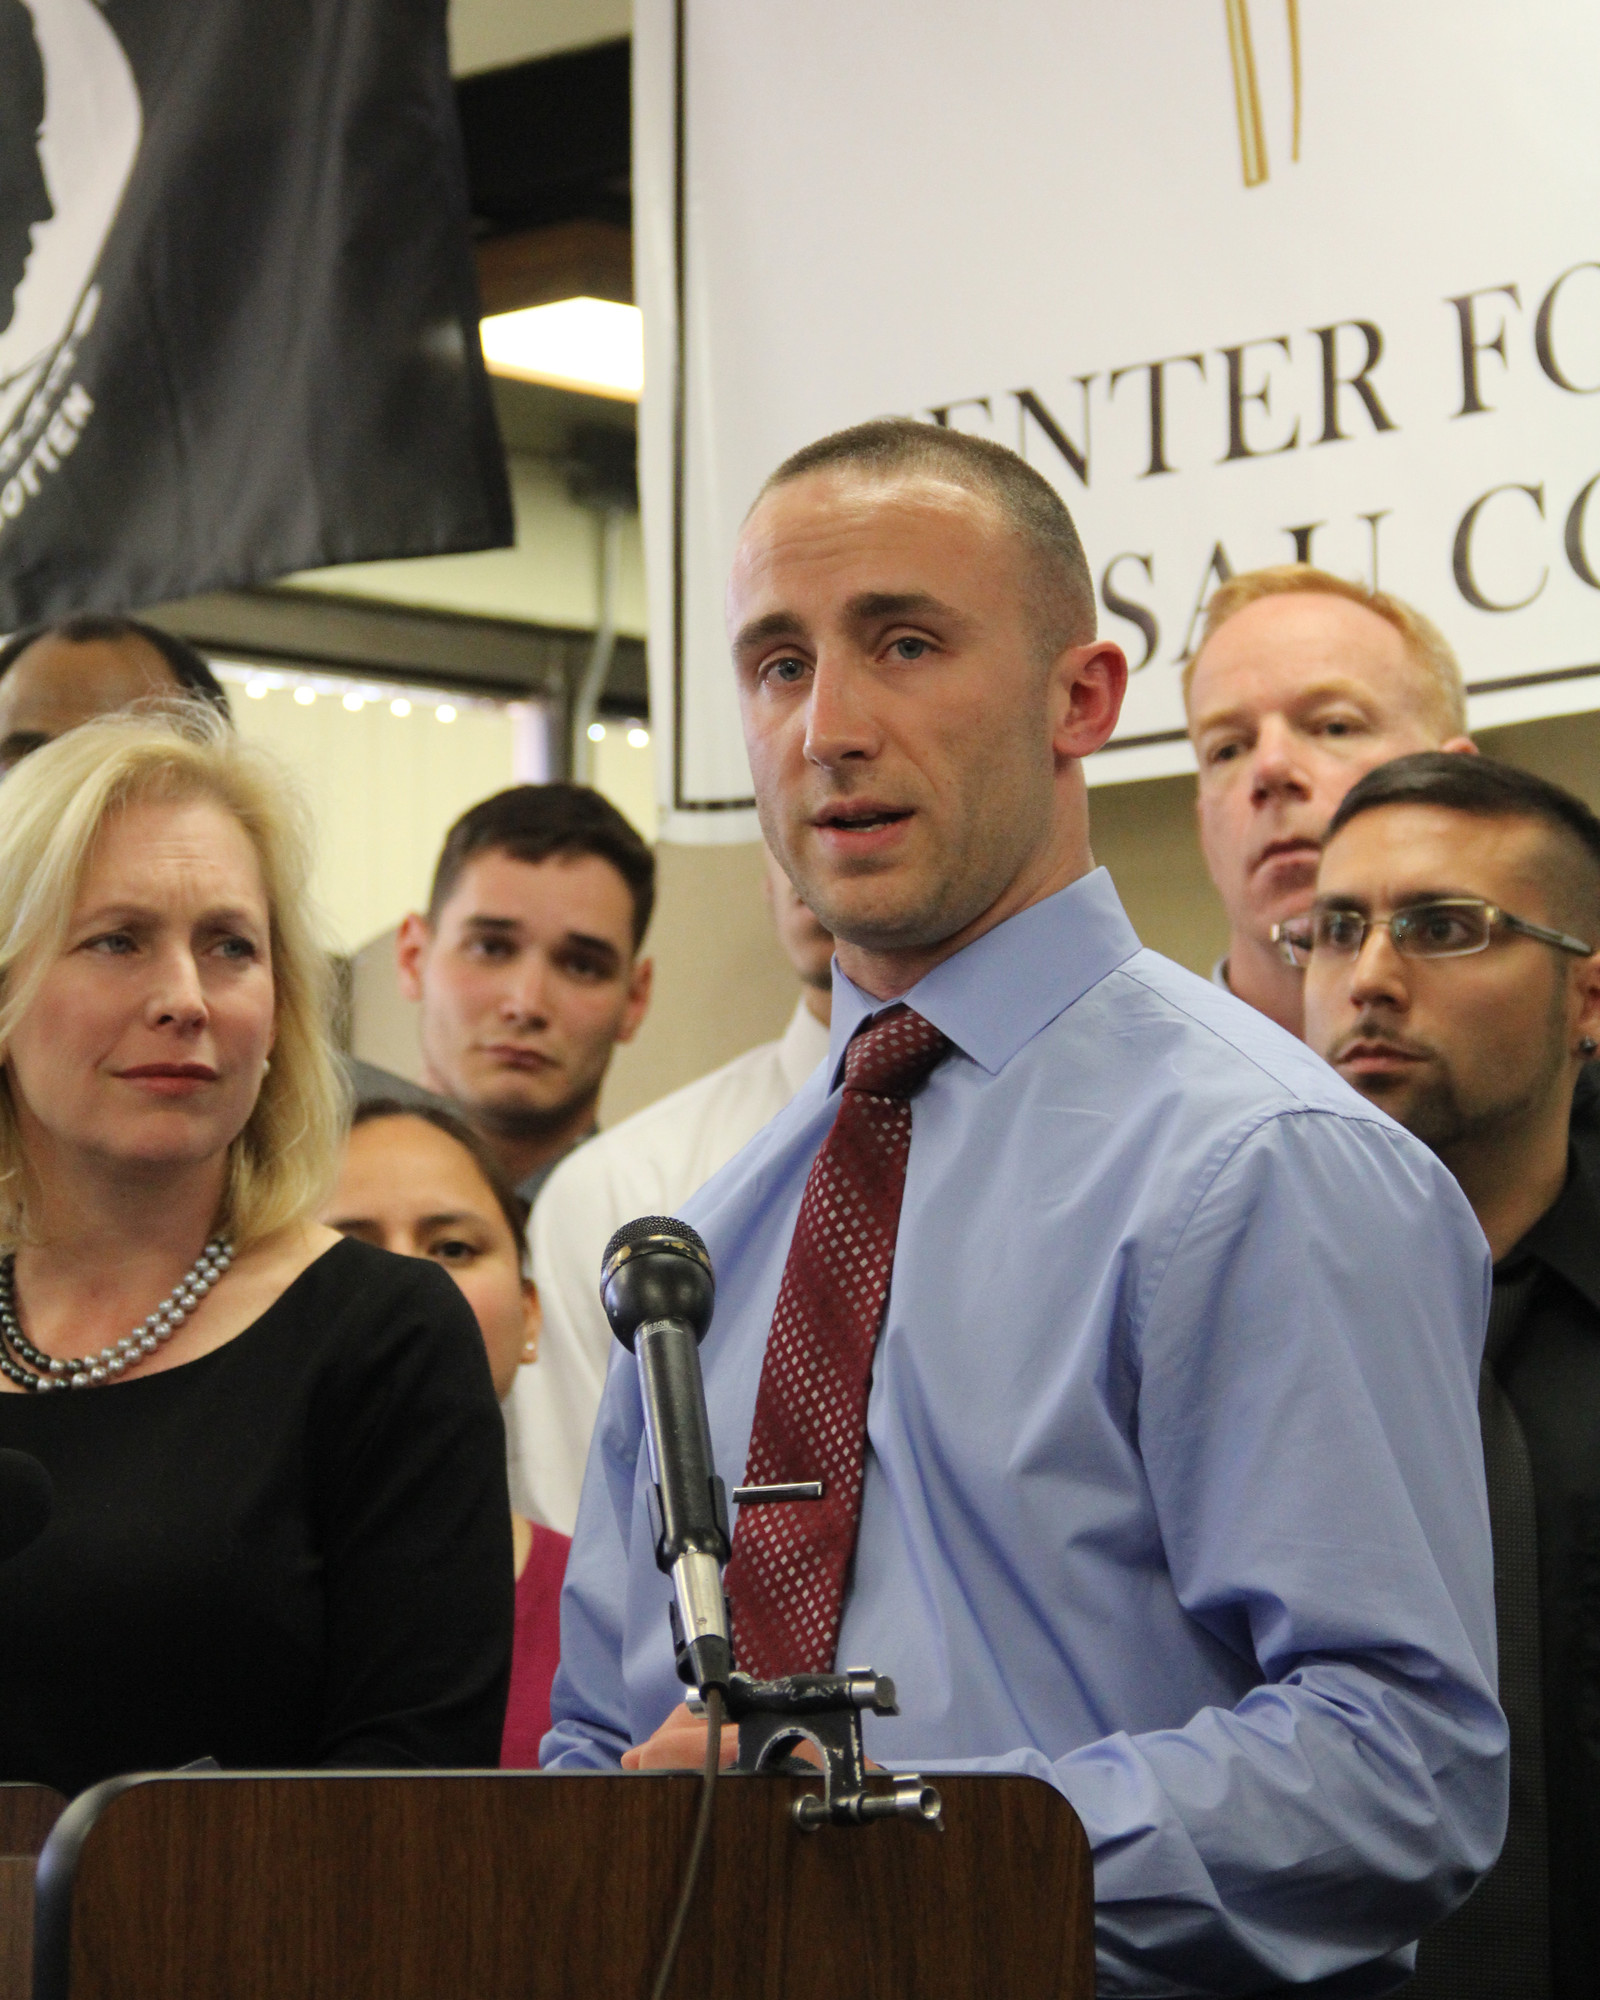 Iraq War veteran Kristofer Goldsmith, 28, detailed his discharge experience at a news conference on April 16, as Sen. Kirsten Gillibrand, left, listened.